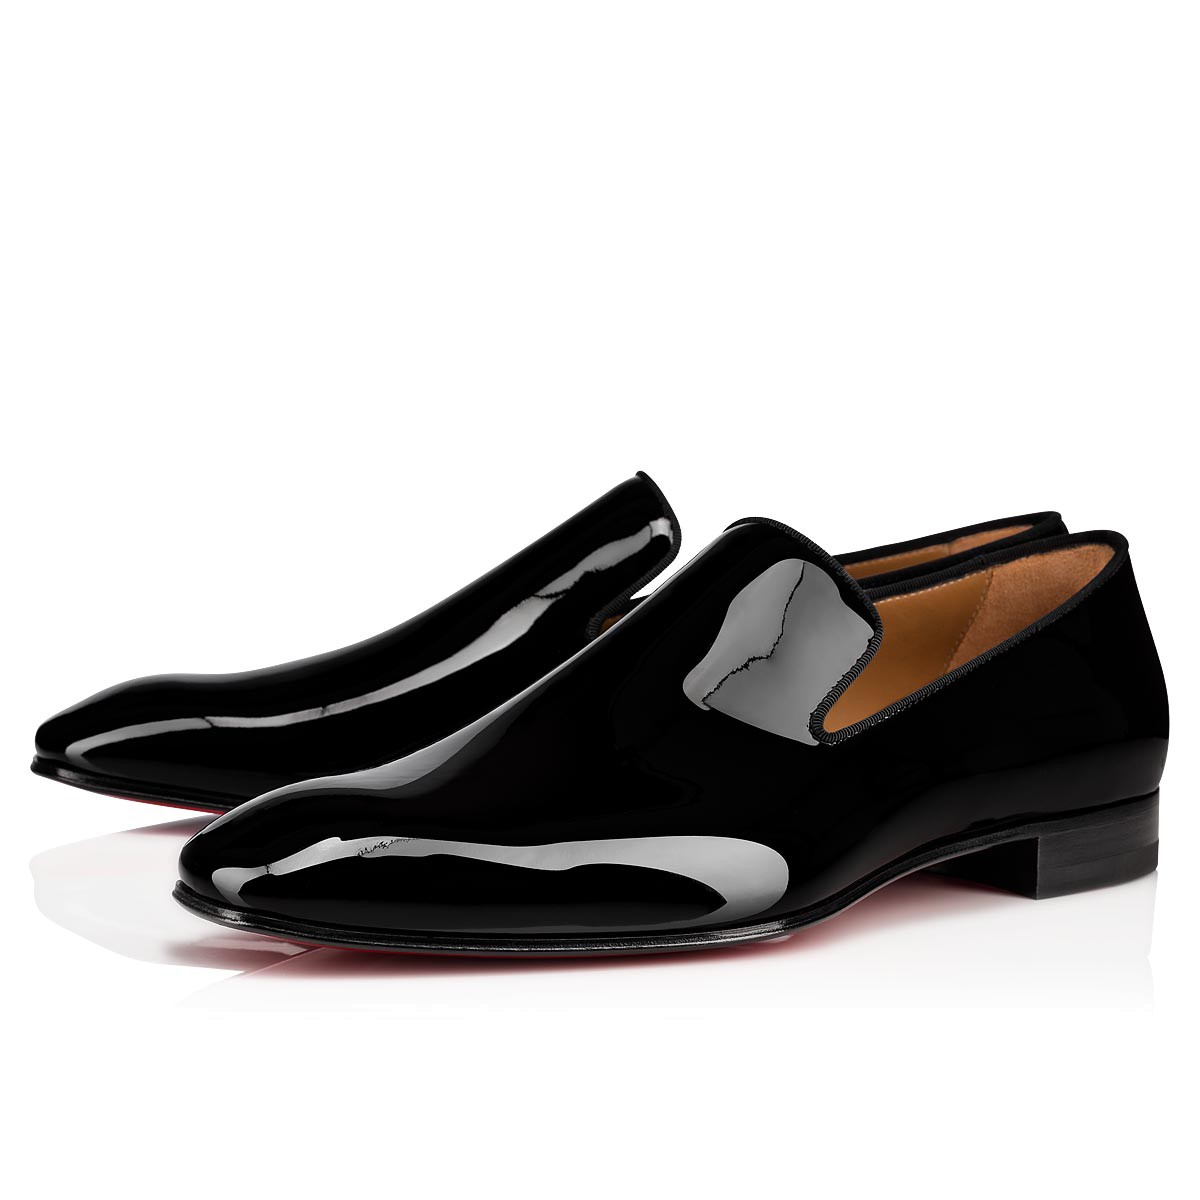 977294b19272 Dandelion Flat Black Patent Leather - Men Shoes - Christian Louboutin